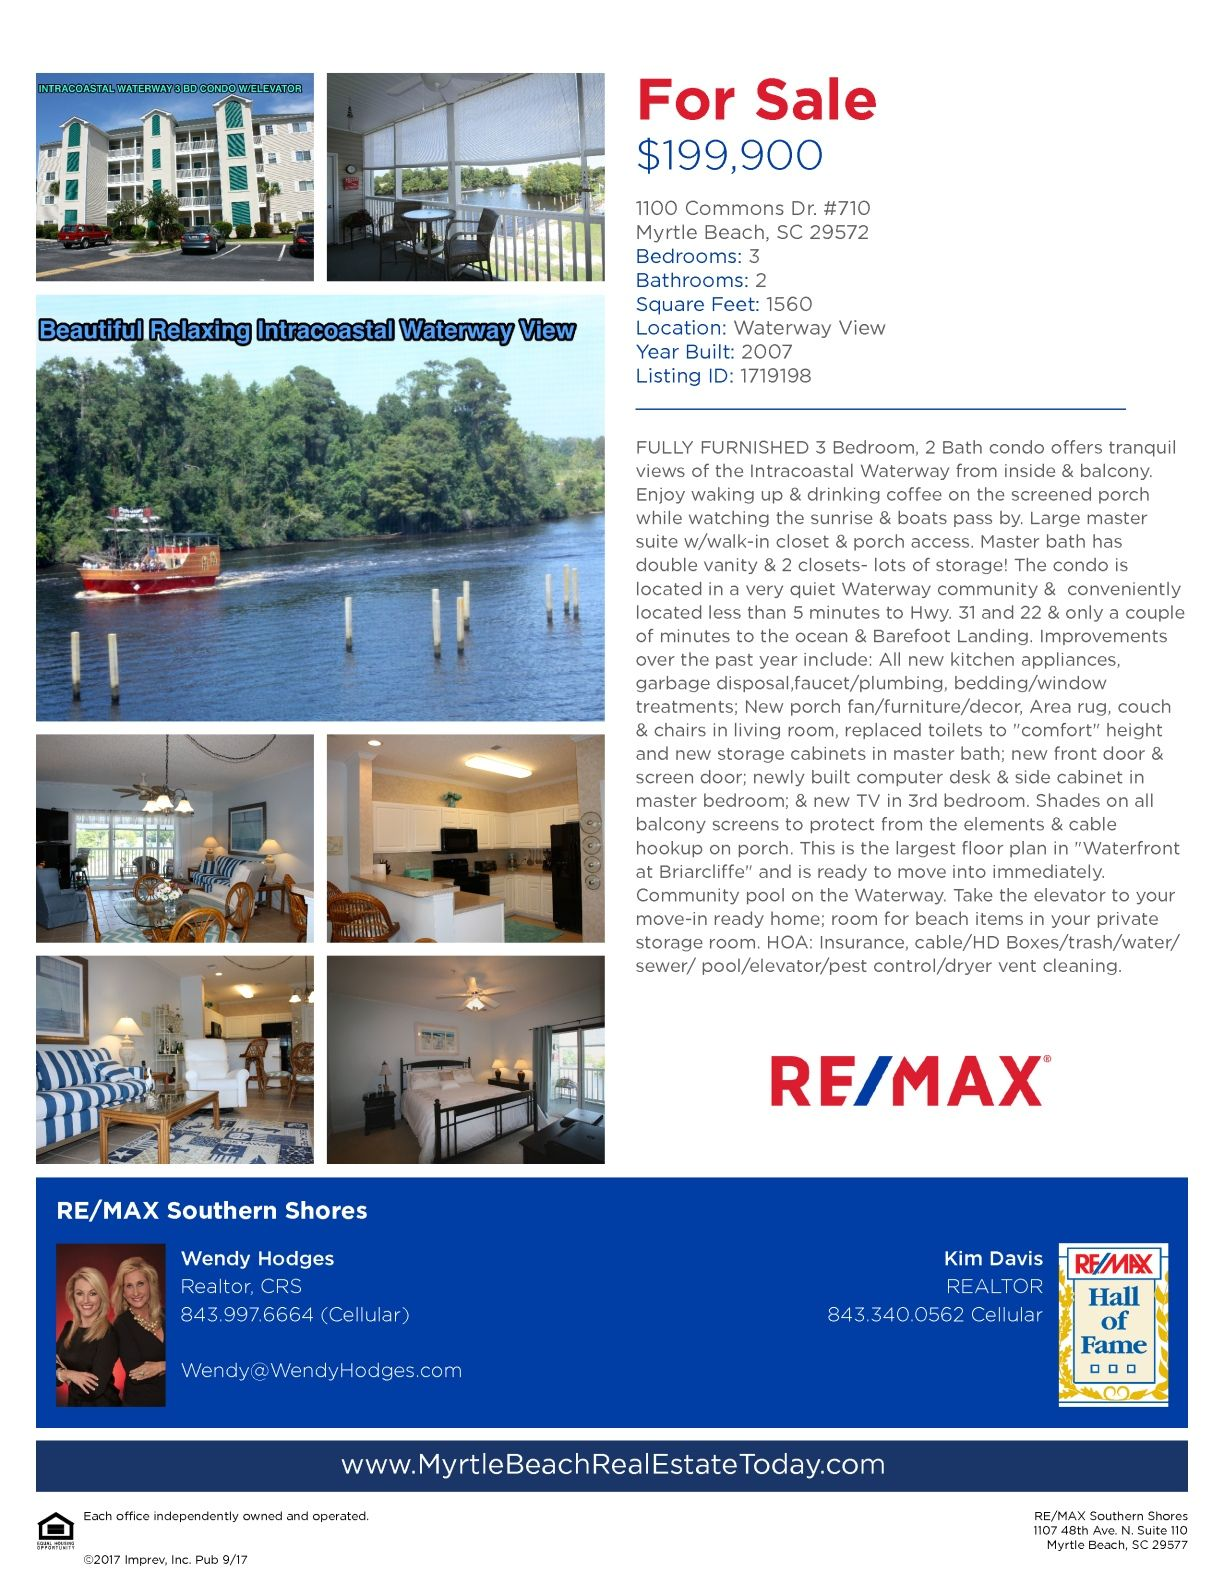 Pin By Coldwell Banker Chicora Advant On Homes For Sale Near Myrtle Beach Sc Myrtle Beach North Myrtle Beach Intracoastal Waterway